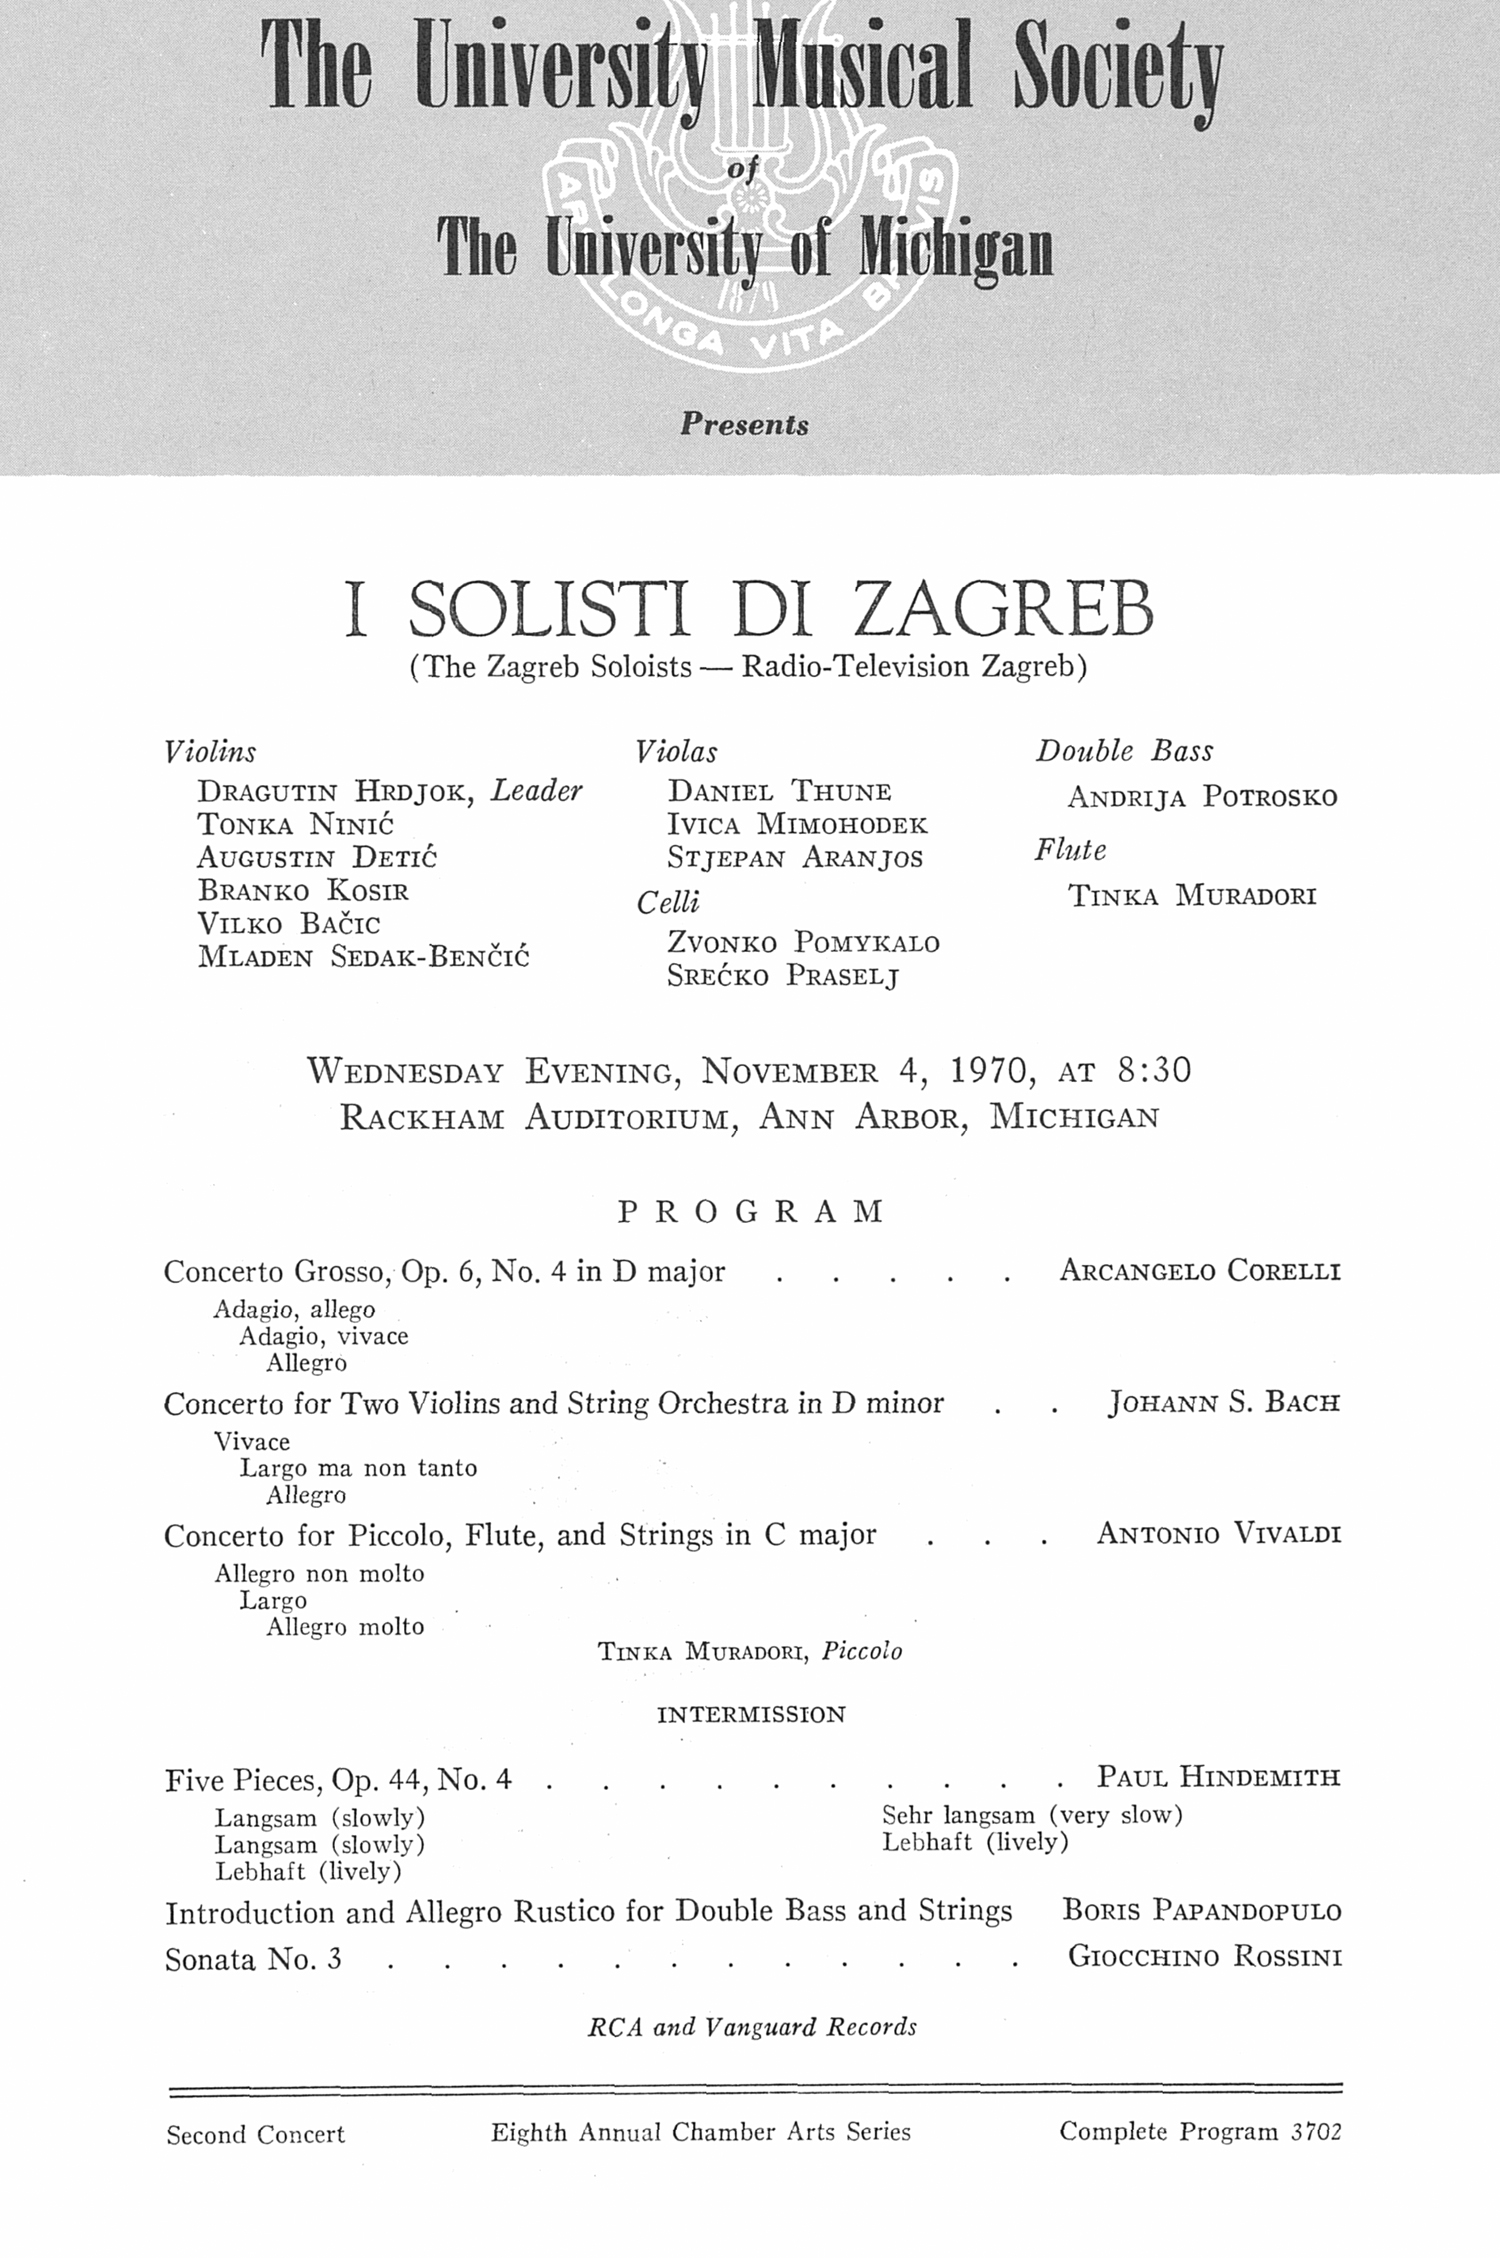 UMS Concert Program, November 4, 1970: I Solisti Di Zagreb --  image